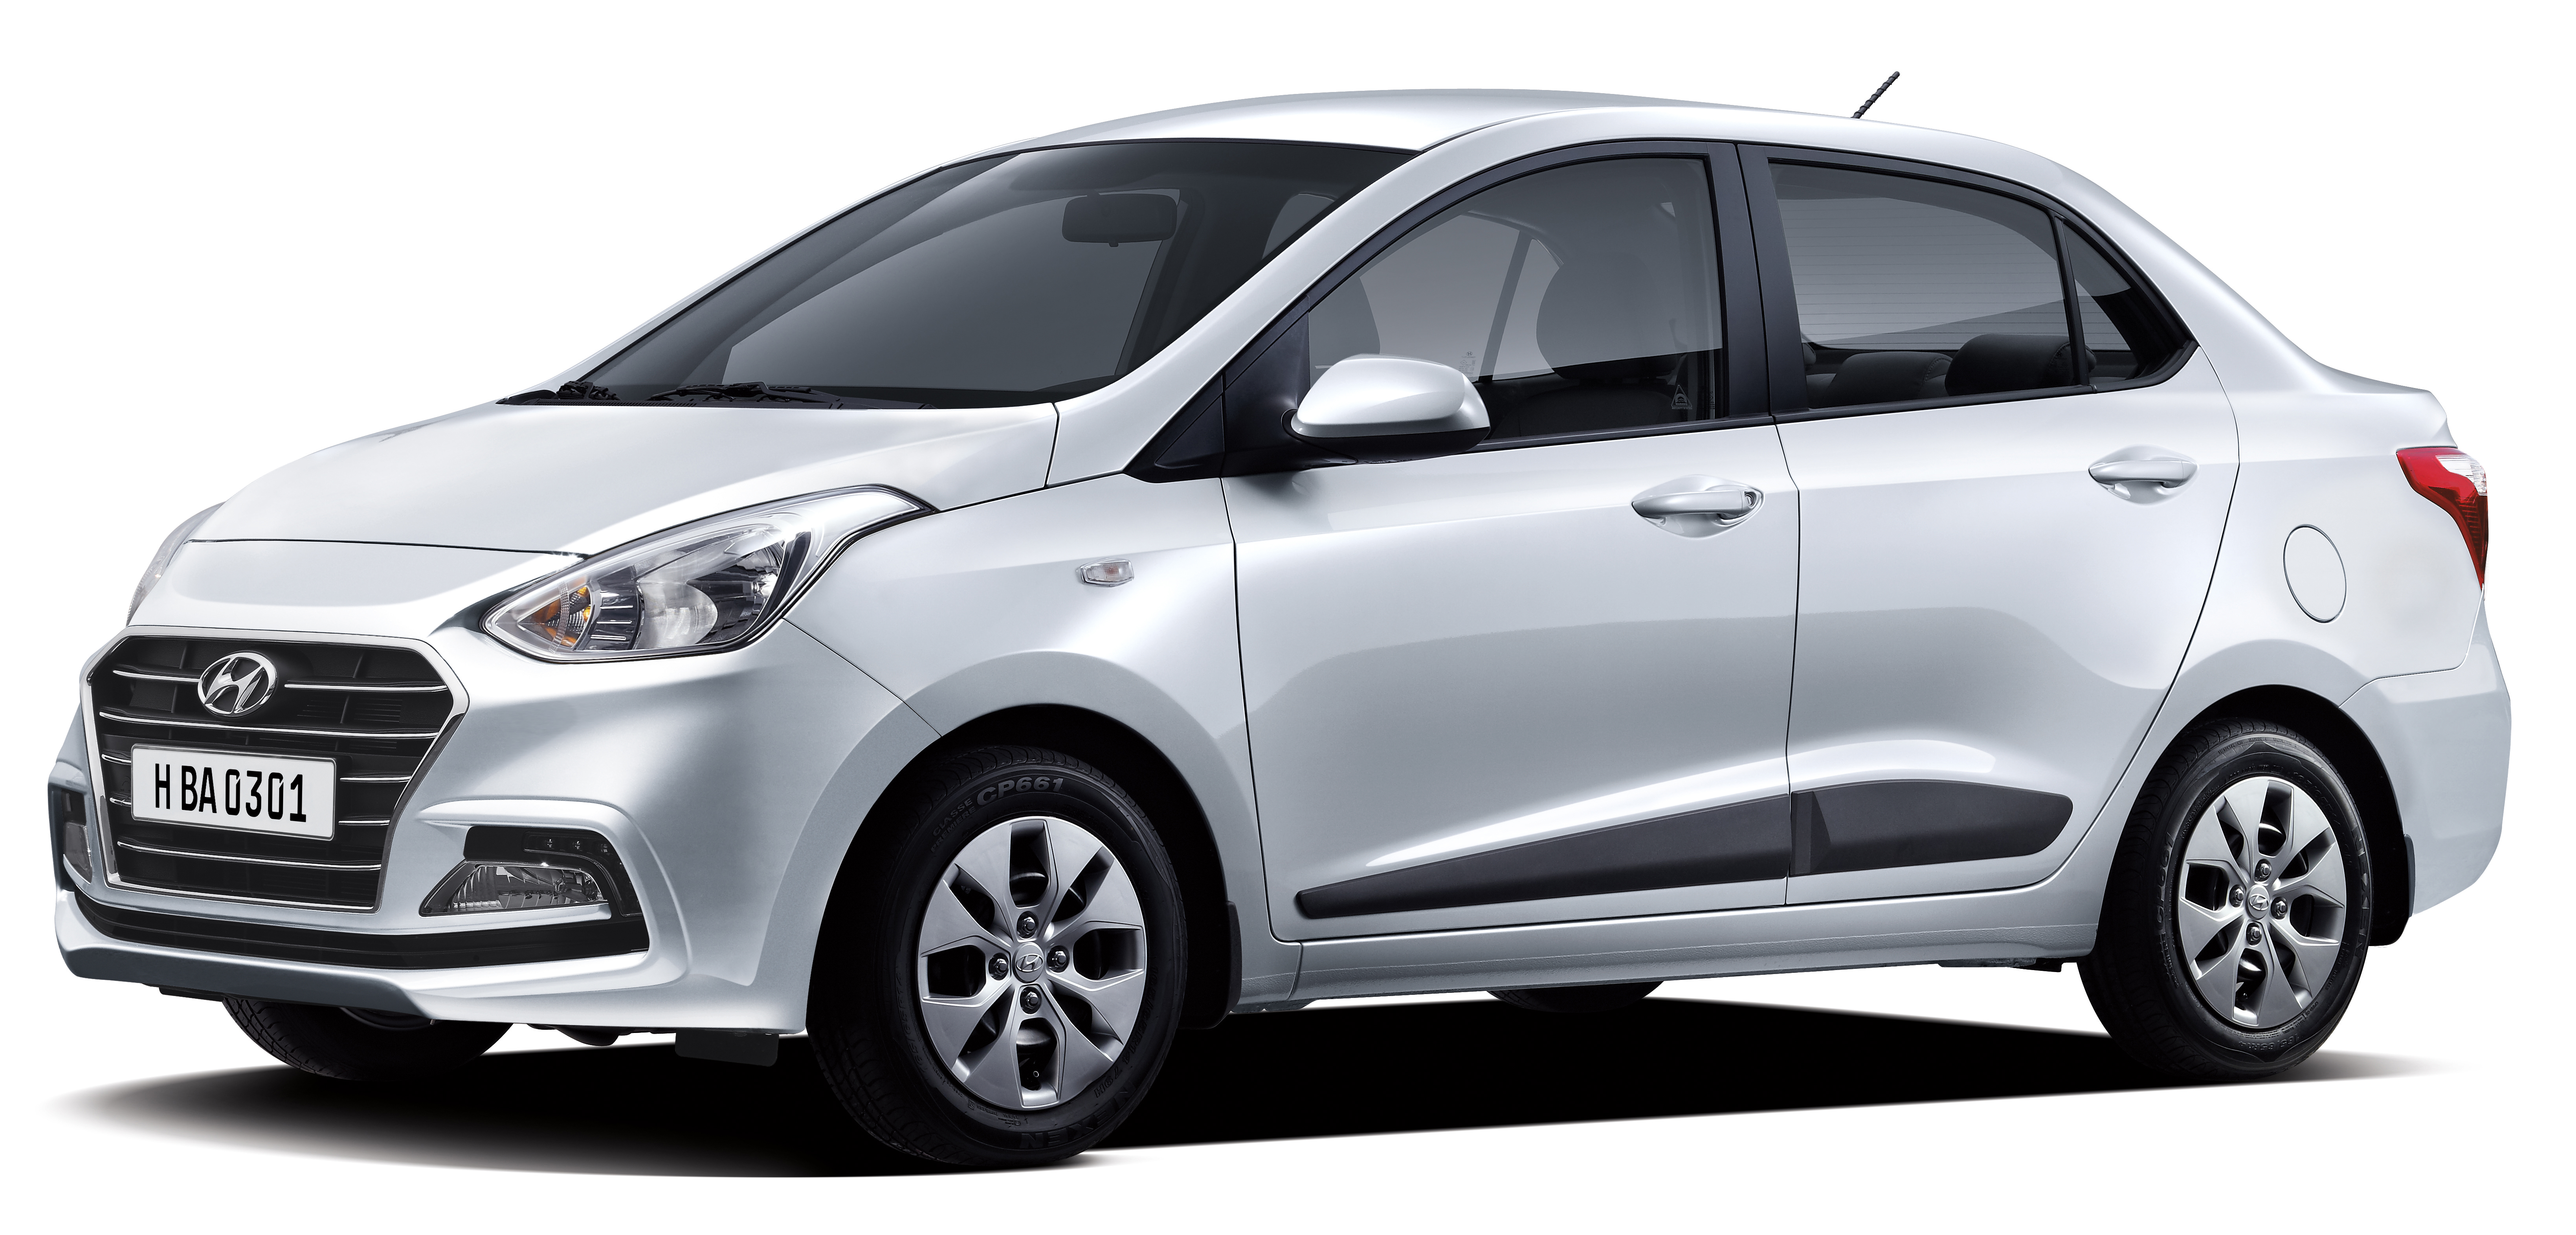 Hyundai i10 hd photo